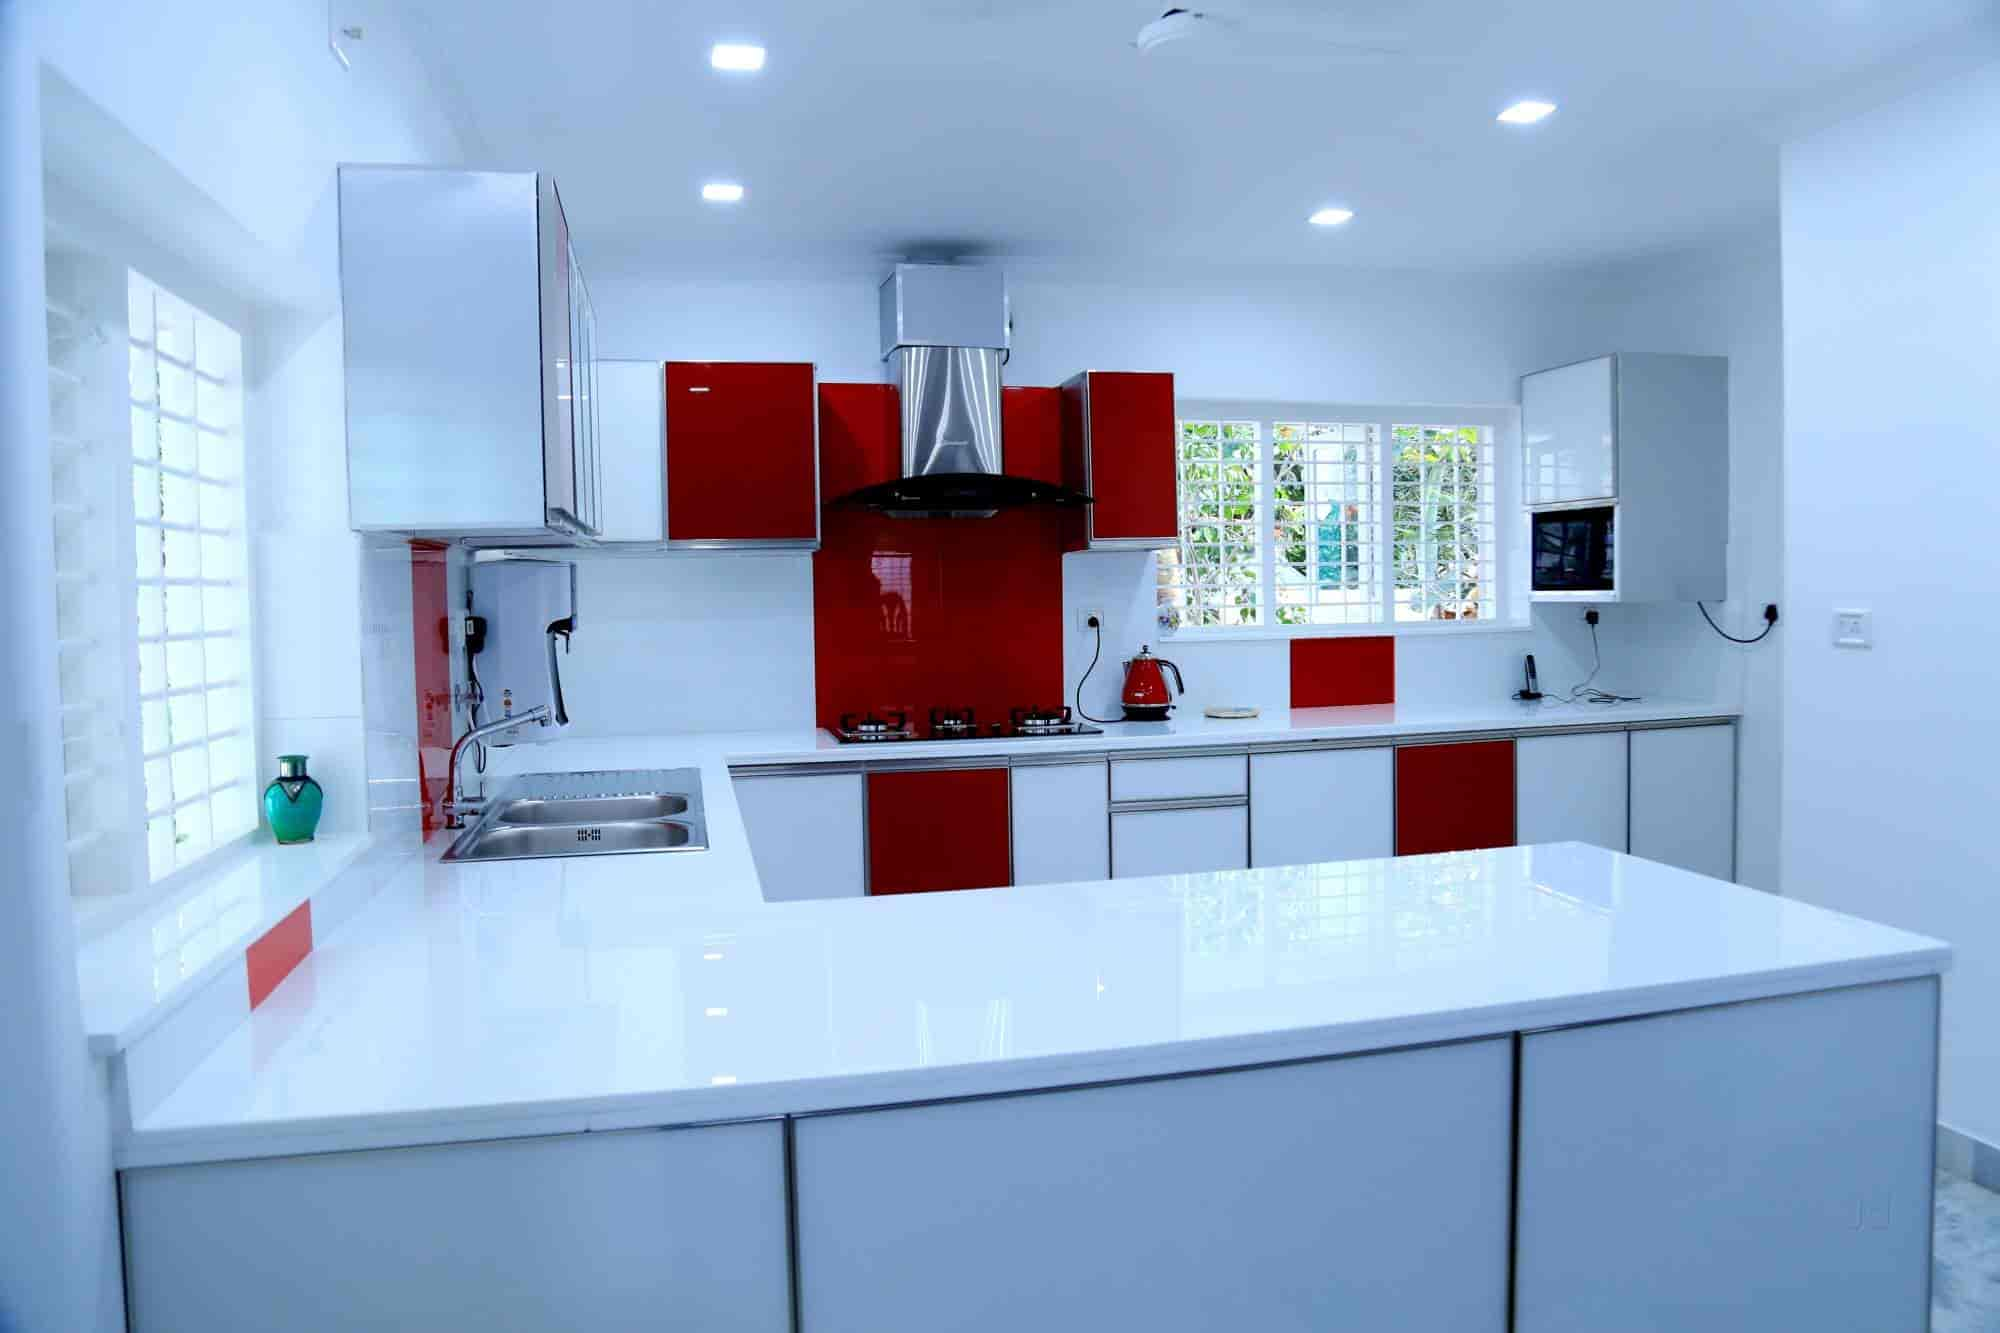 Goodlook, Kalady - Modular Kitchen Dealers in Ernakulam - Justdial